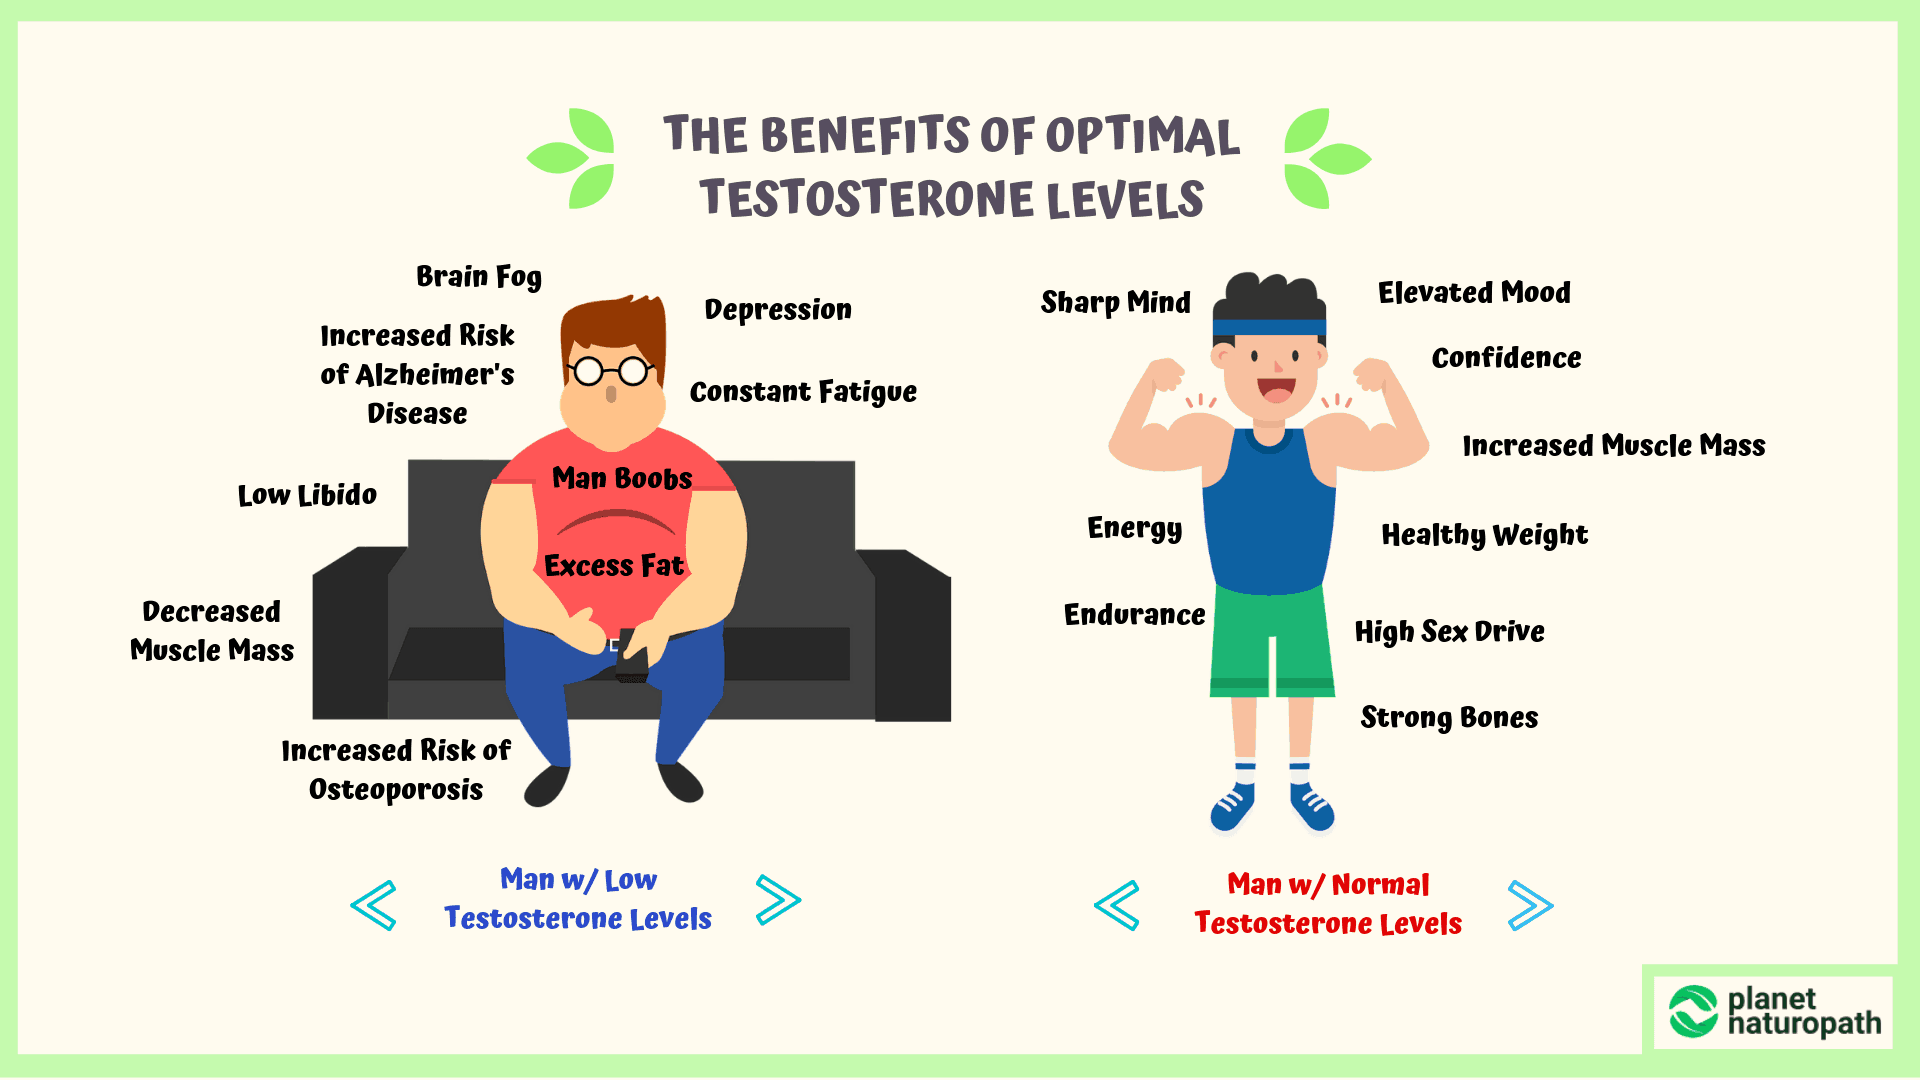 benefits-of-optimal-testosterone-levels